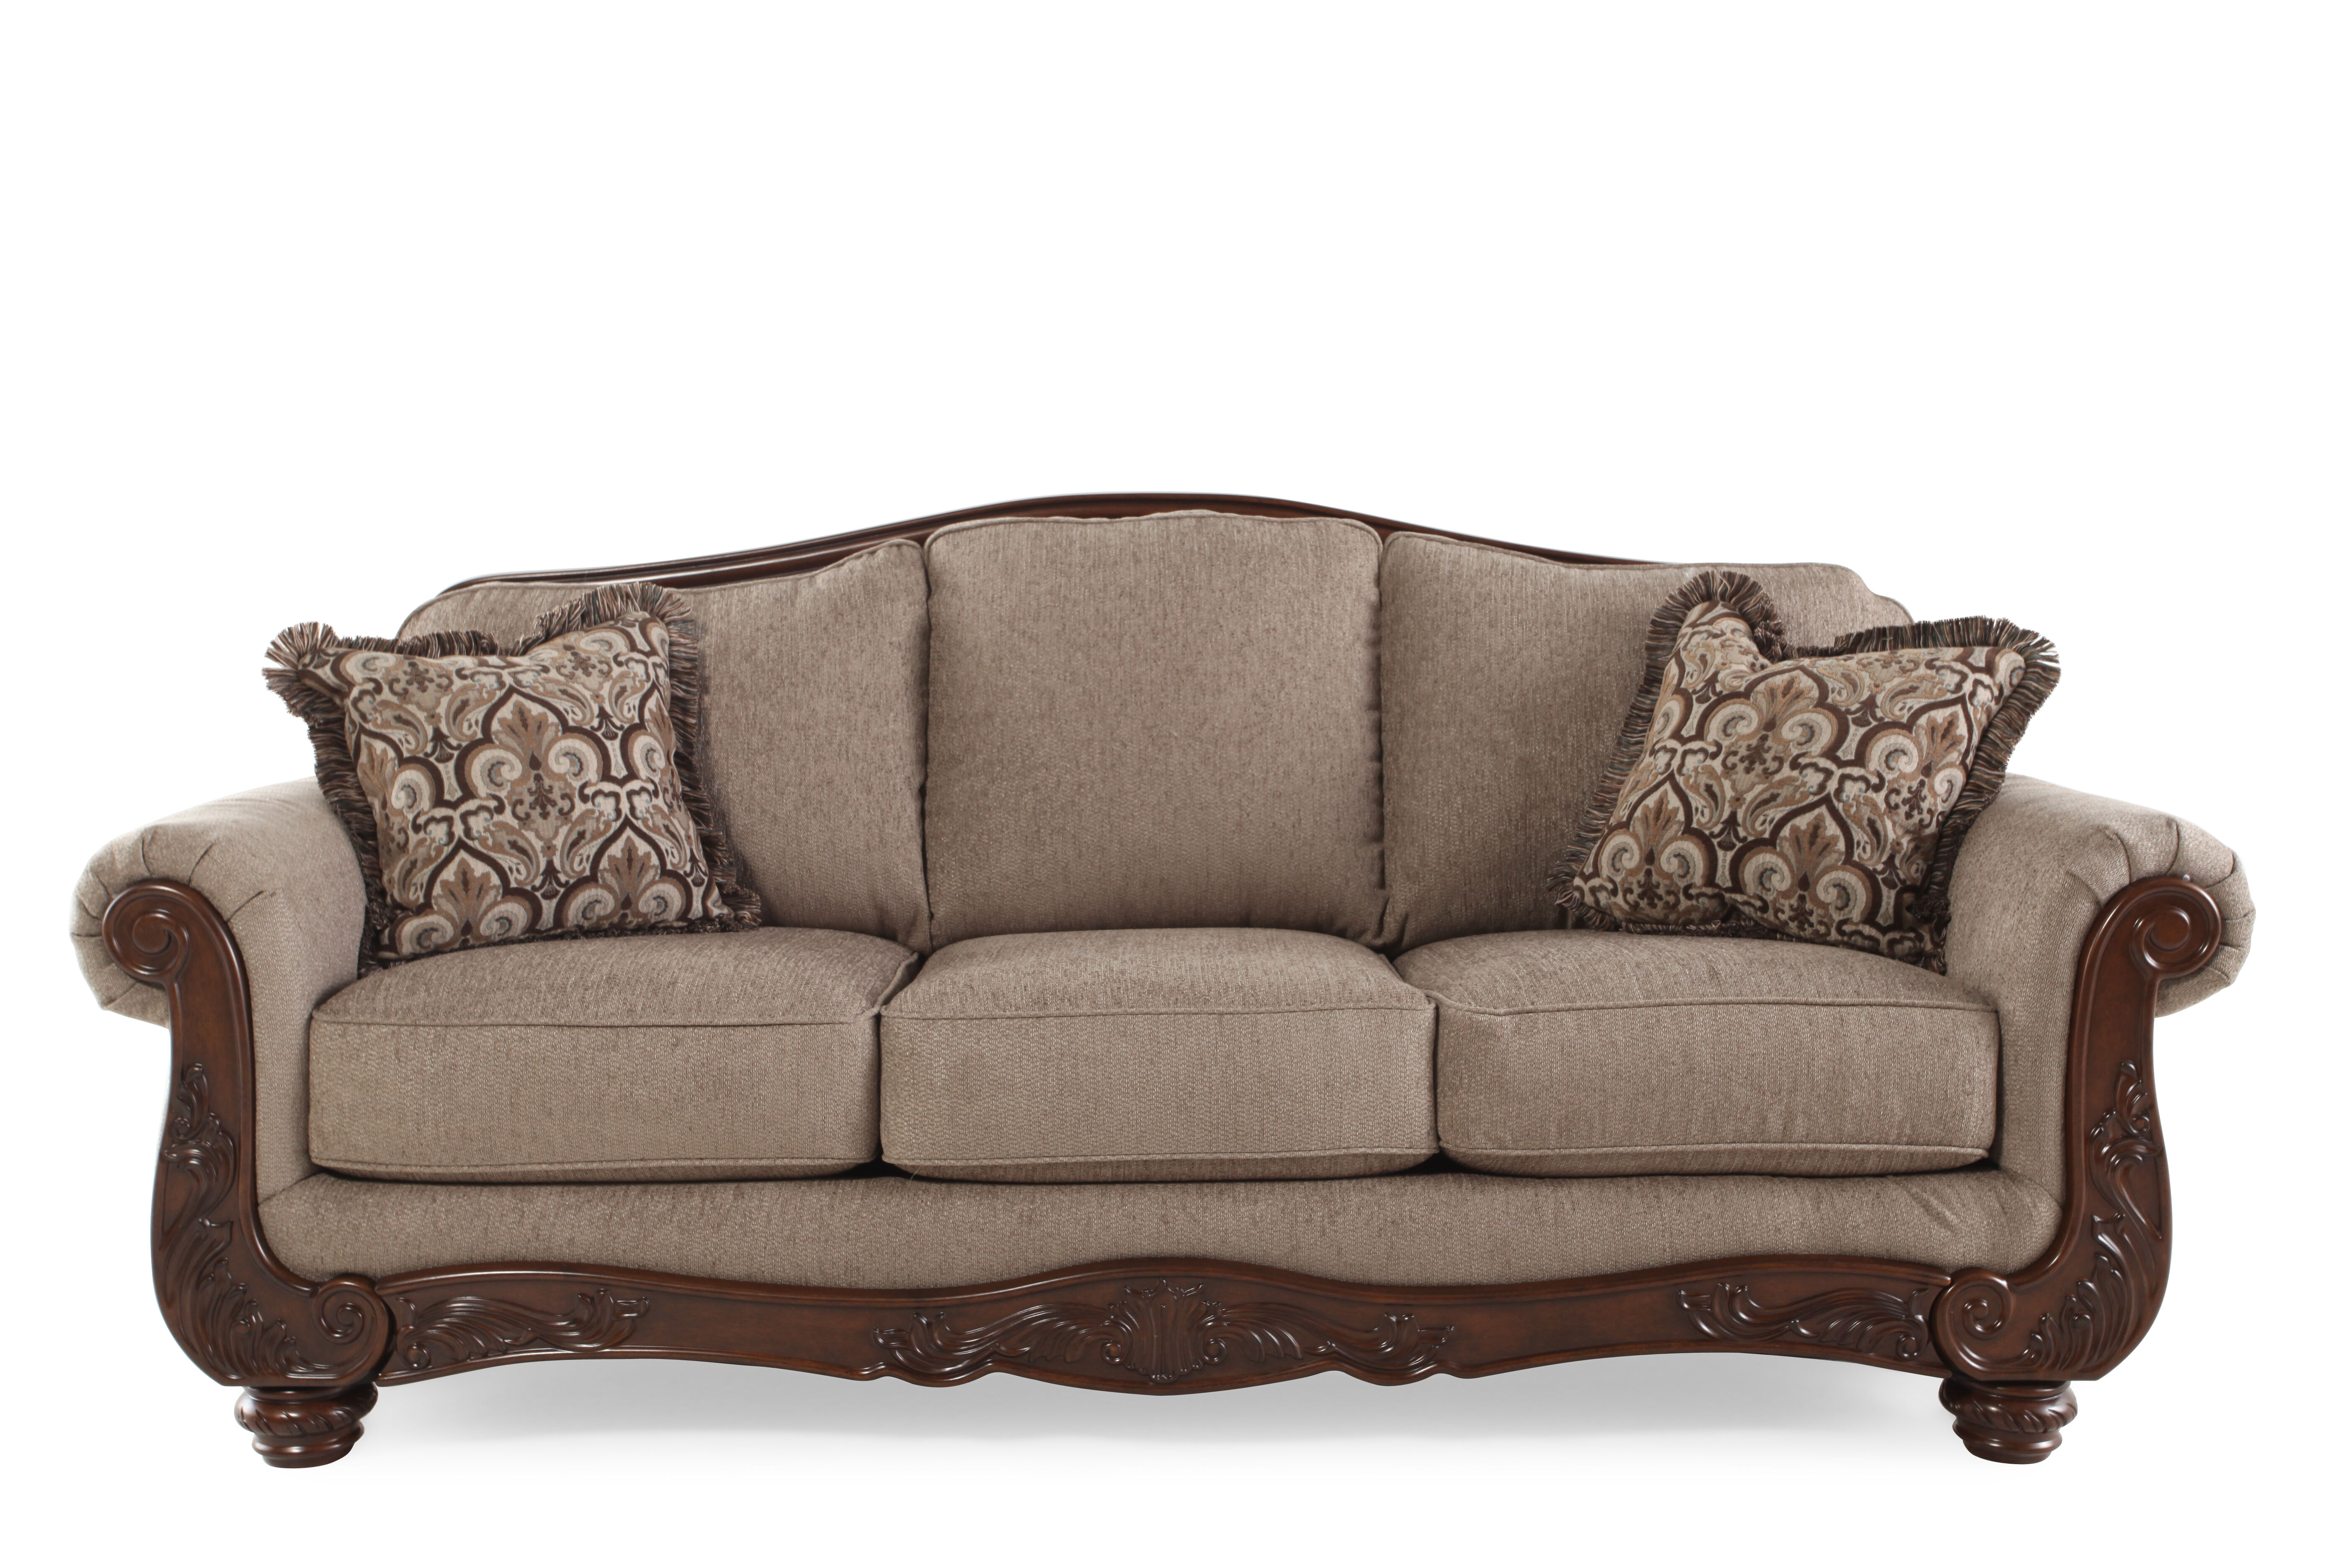 Charming Traditional Rolled Arm 86u0026quot; Sofa In Cocoa